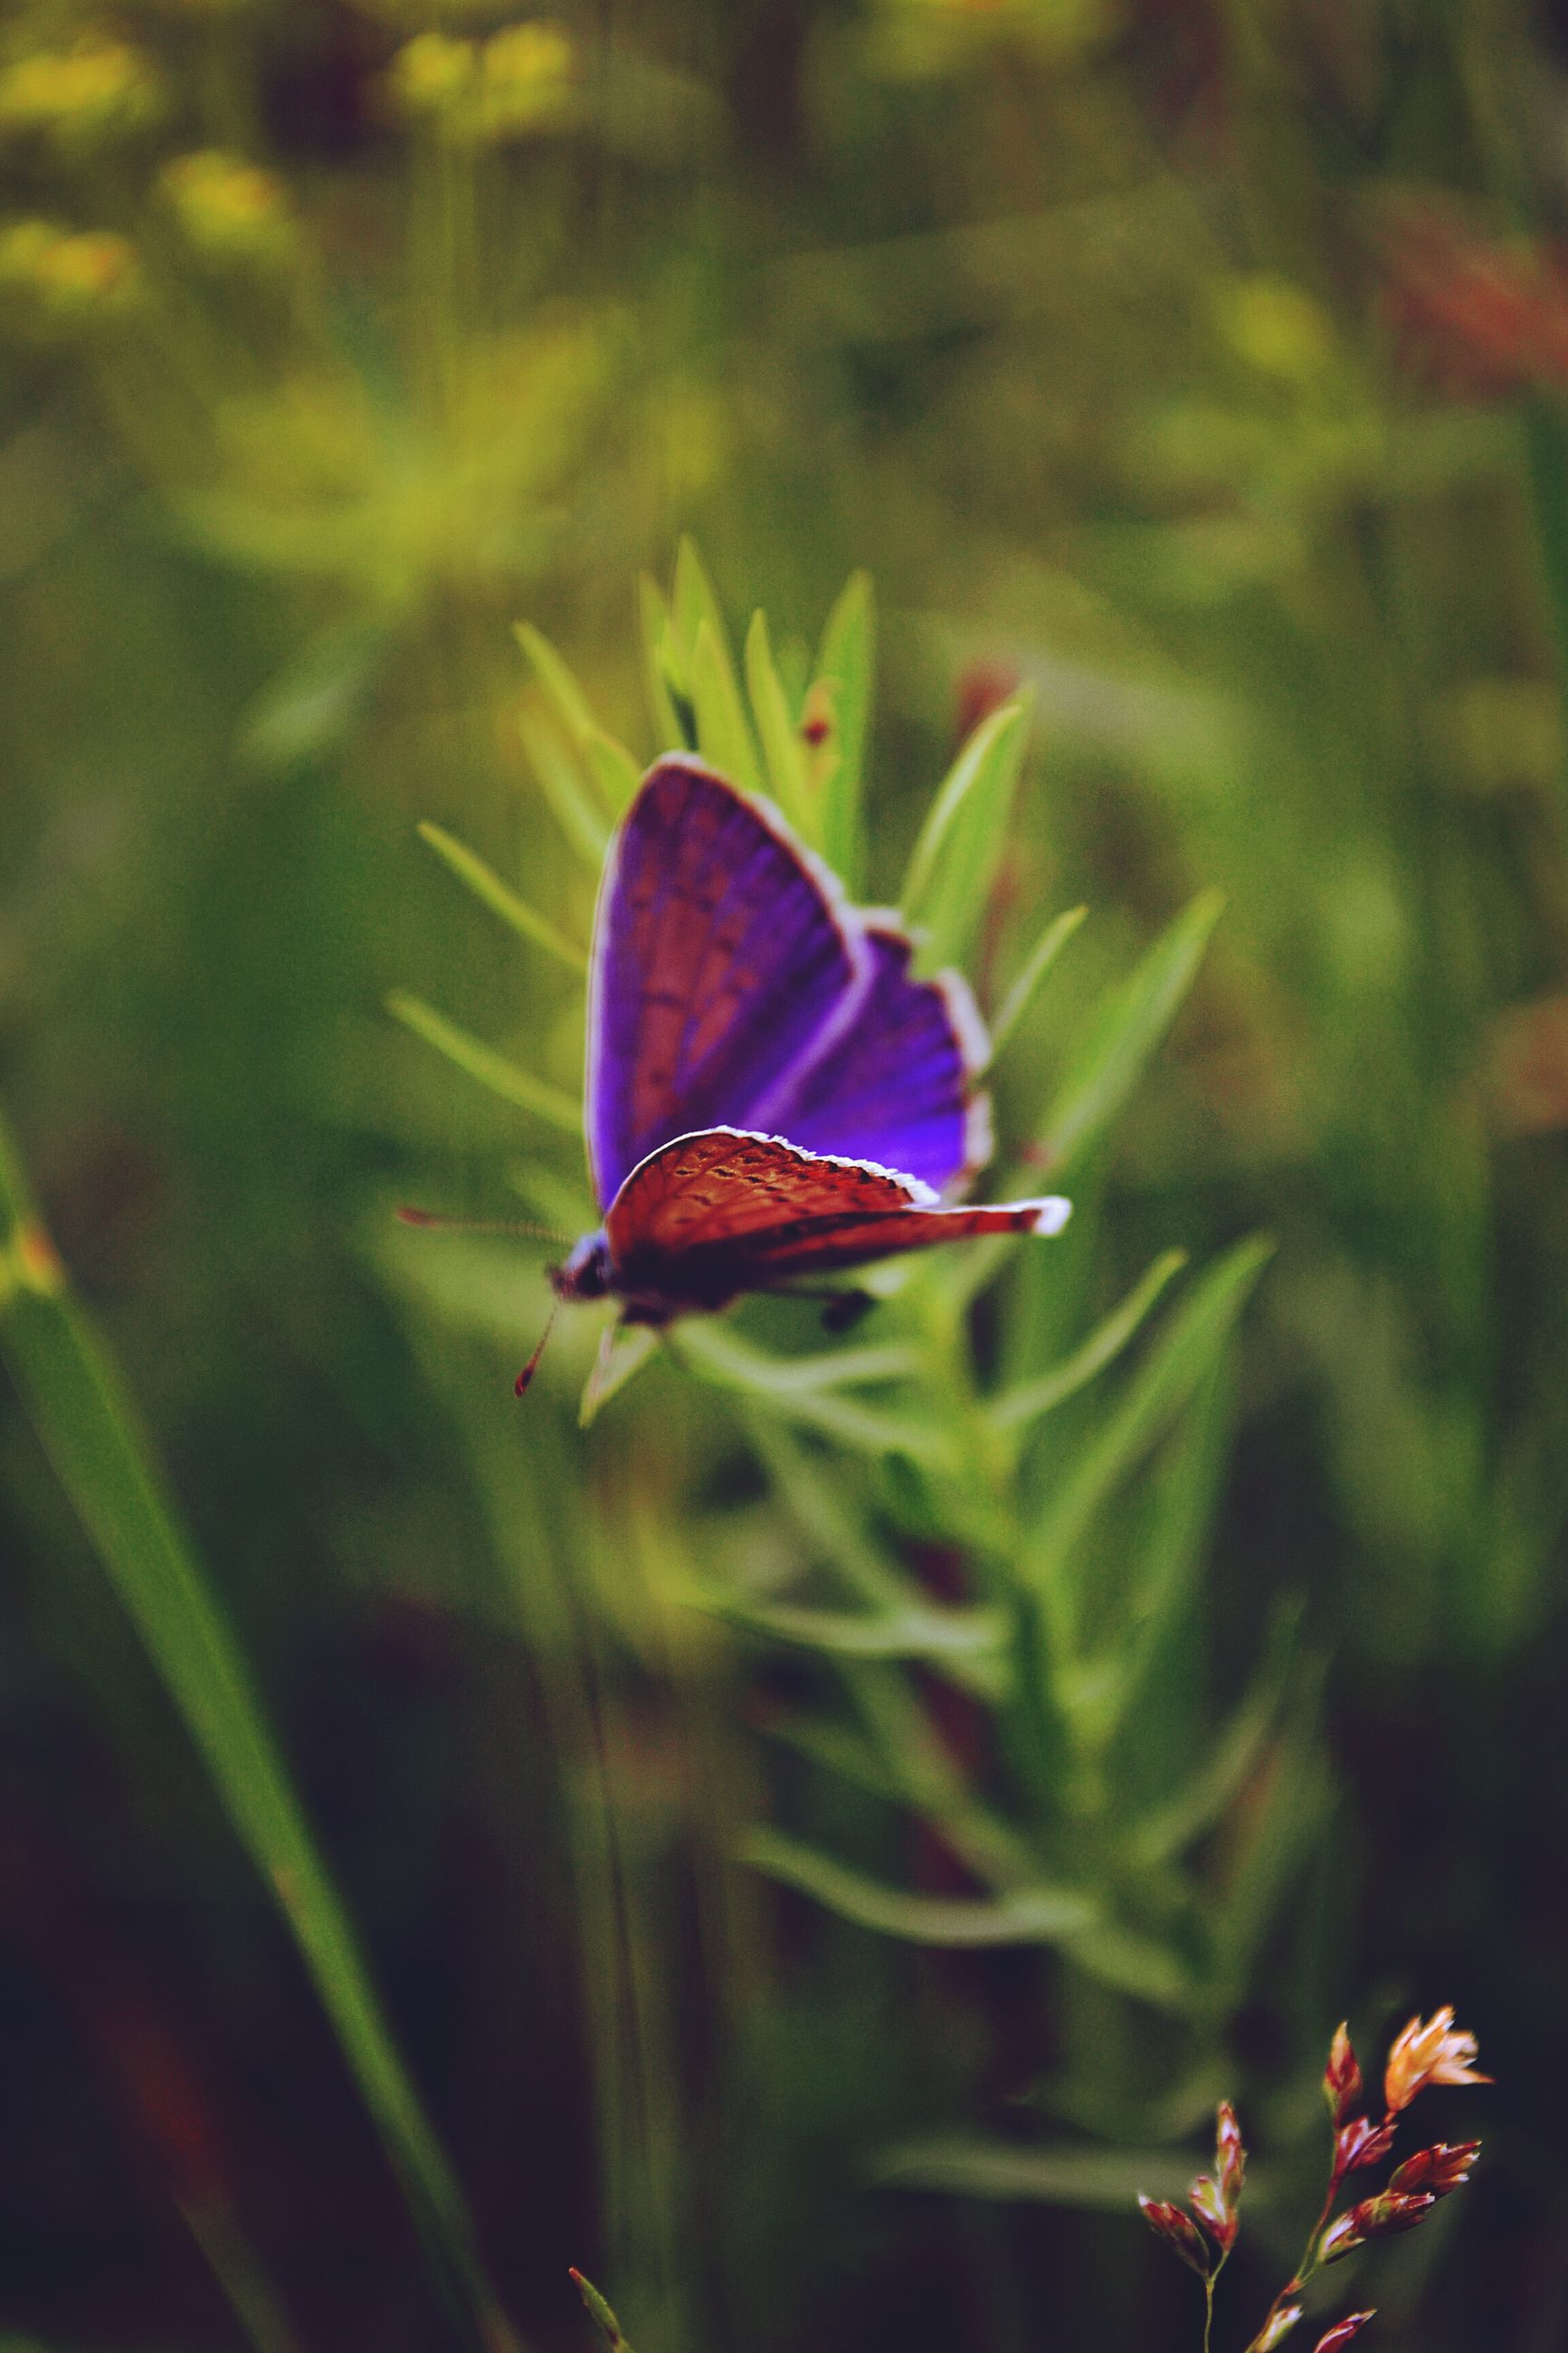 one animal, animals in the wild, insect, animal themes, wildlife, flower, butterfly - insect, fragility, butterfly, plant, purple, close-up, growth, beauty in nature, nature, focus on foreground, leaf, freshness, selective focus, pollination